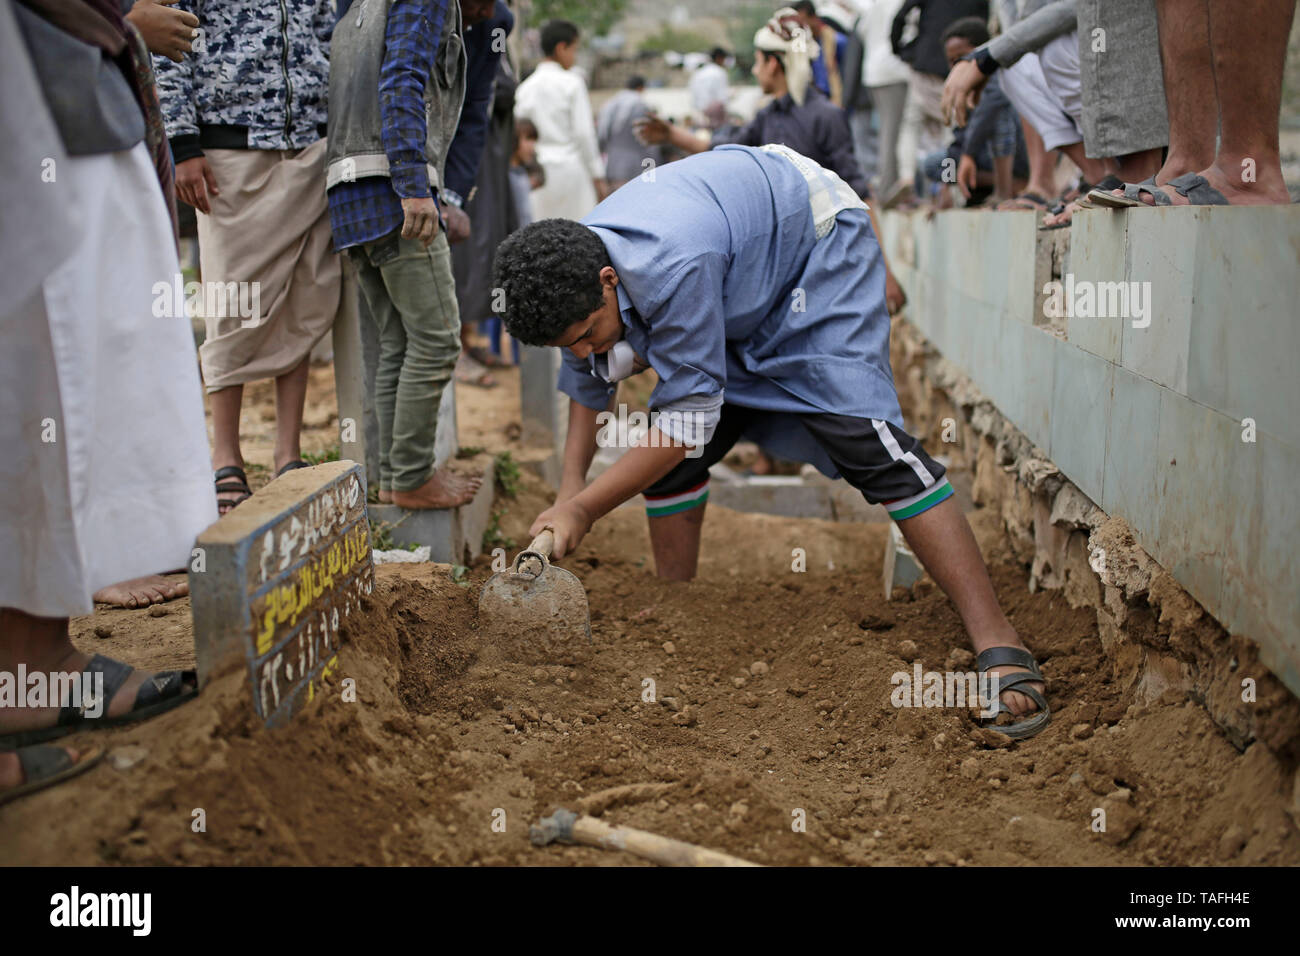 Sanaa, Yemen. 24th May, 2019. Yemeni people bury the bodies of the victims who were killed in an air strike allegedly carried out by the Saudi-led coalition. Credit: Hani Al-Ansi/dpa/Alamy Live News - Stock Image